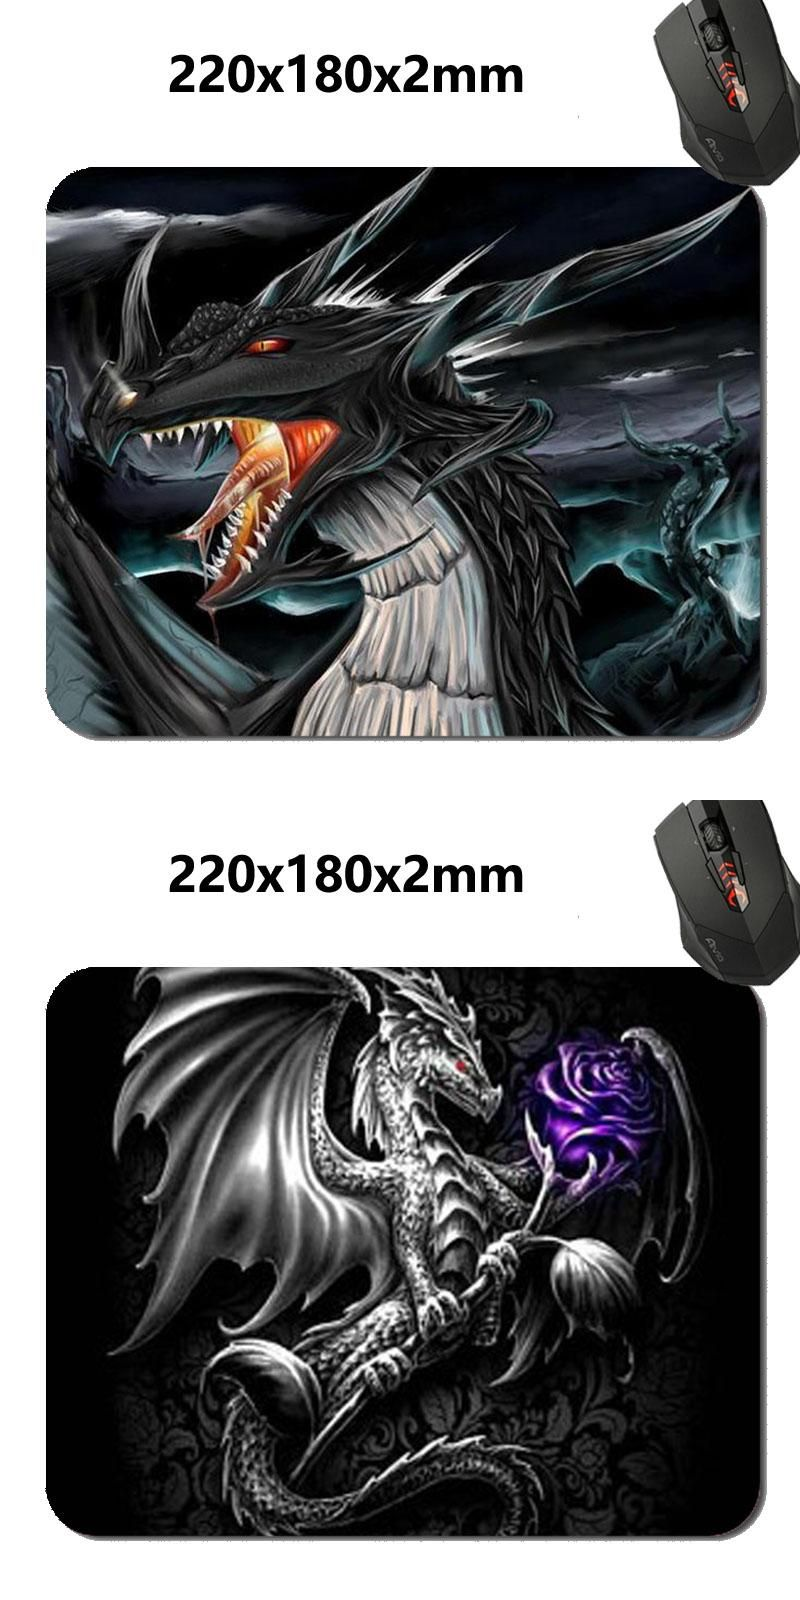 [Visit to Buy] 180*220*2mm FineMousePad Silver Dragon Customized Mouse Pad Oblong Desktop Mousepad Rectangle Non-Slip Gaming Mouse Pads 9... #Advertisement